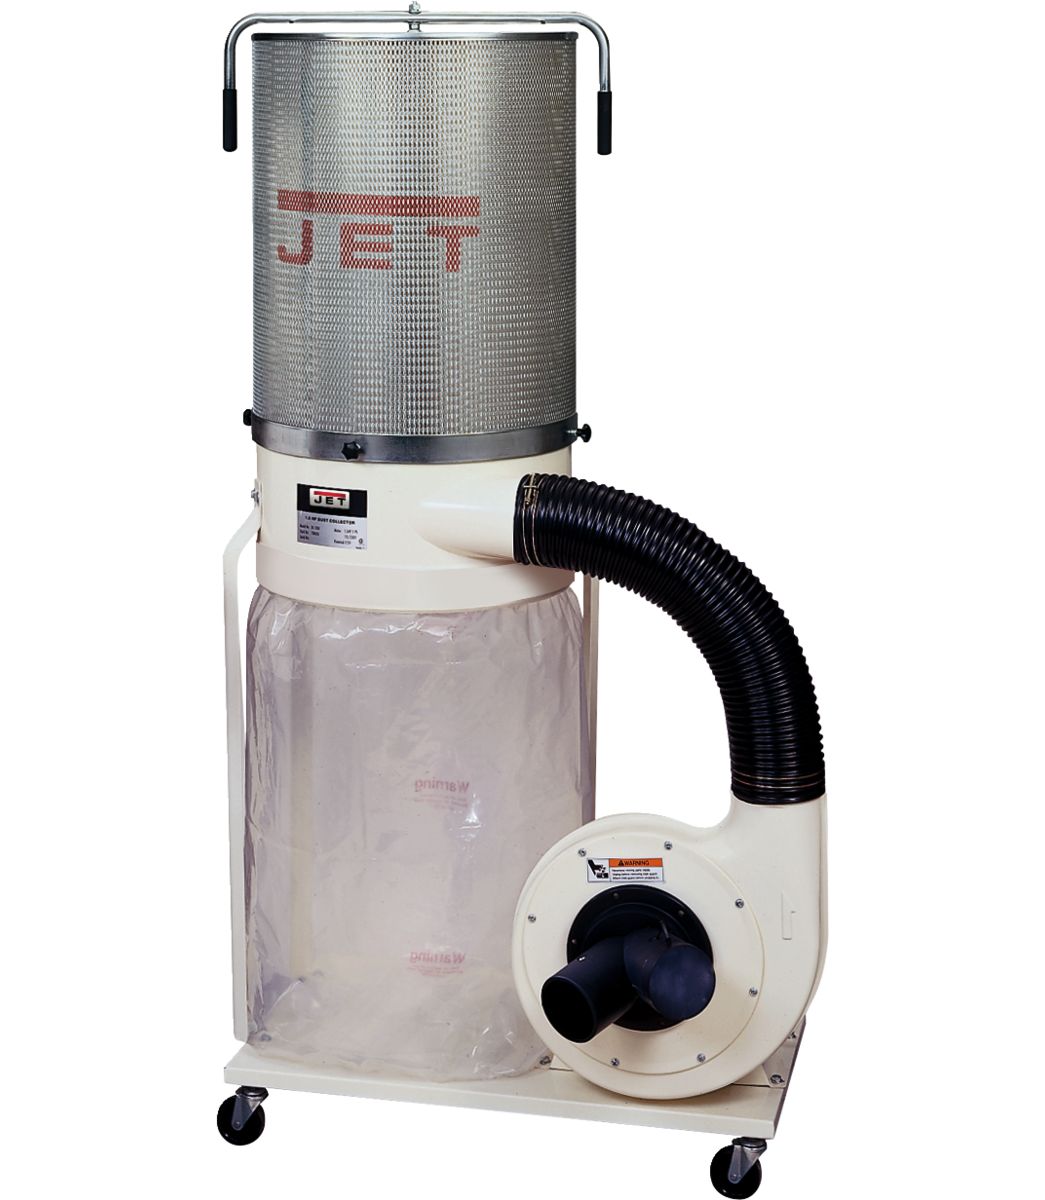 DC-1100VX-CK Dust Collector, 1.5HP 1PH 115/230V, 2-Micron Canister Kit